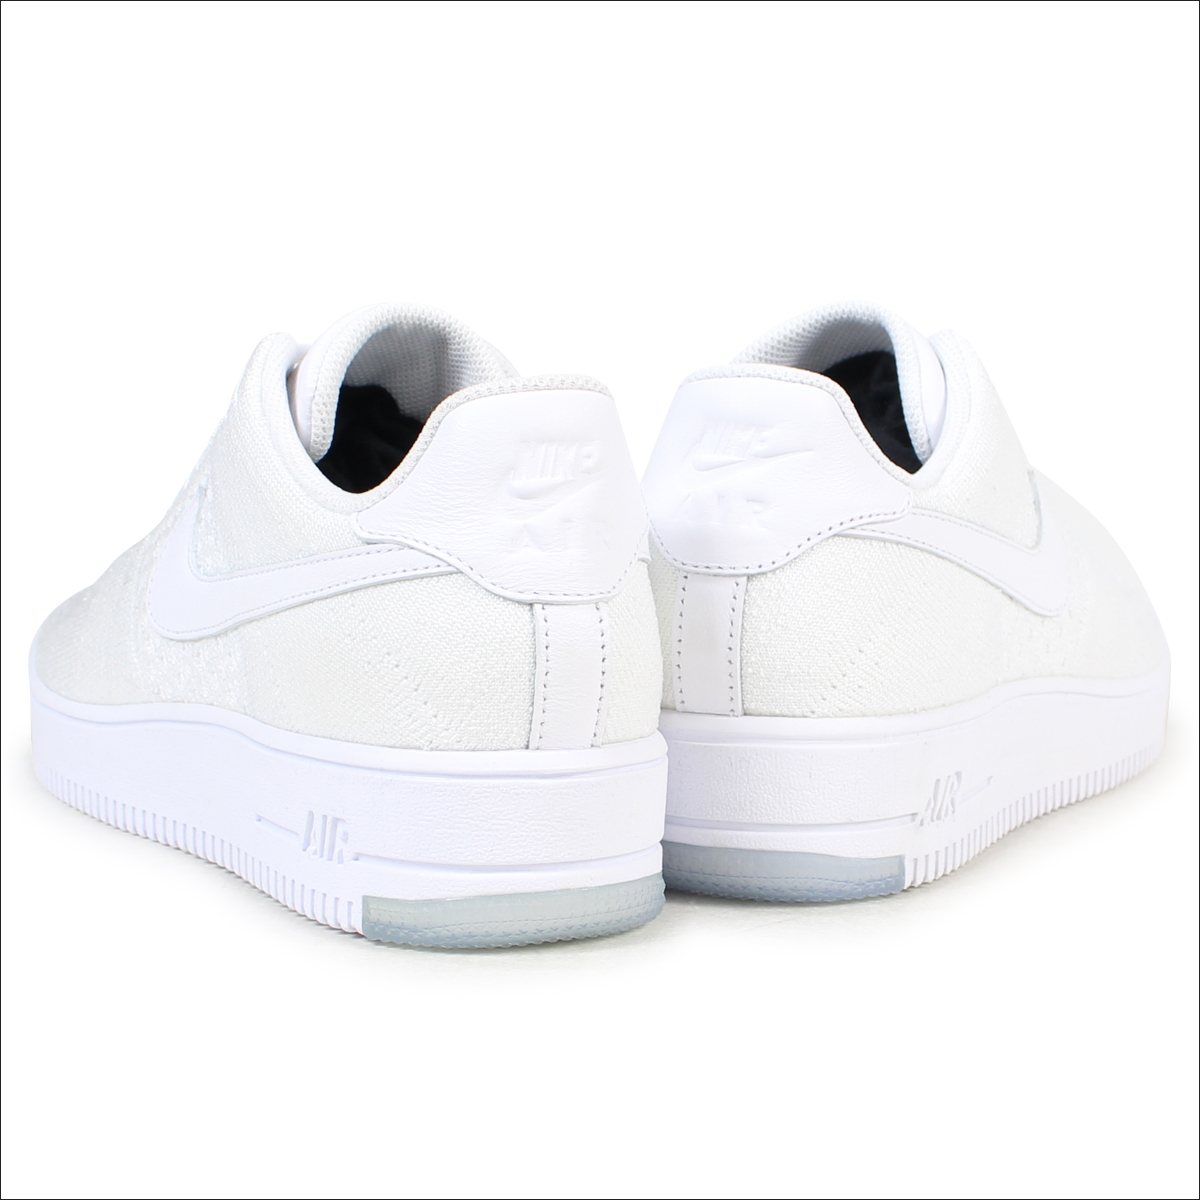 lowest price 302a5 c9061 NIKE AIR FORCE 1 ULTRA FLYKNIT LOW Nike air force 1 fly knit sneakers  817,419-100 men's shoes white [1711]